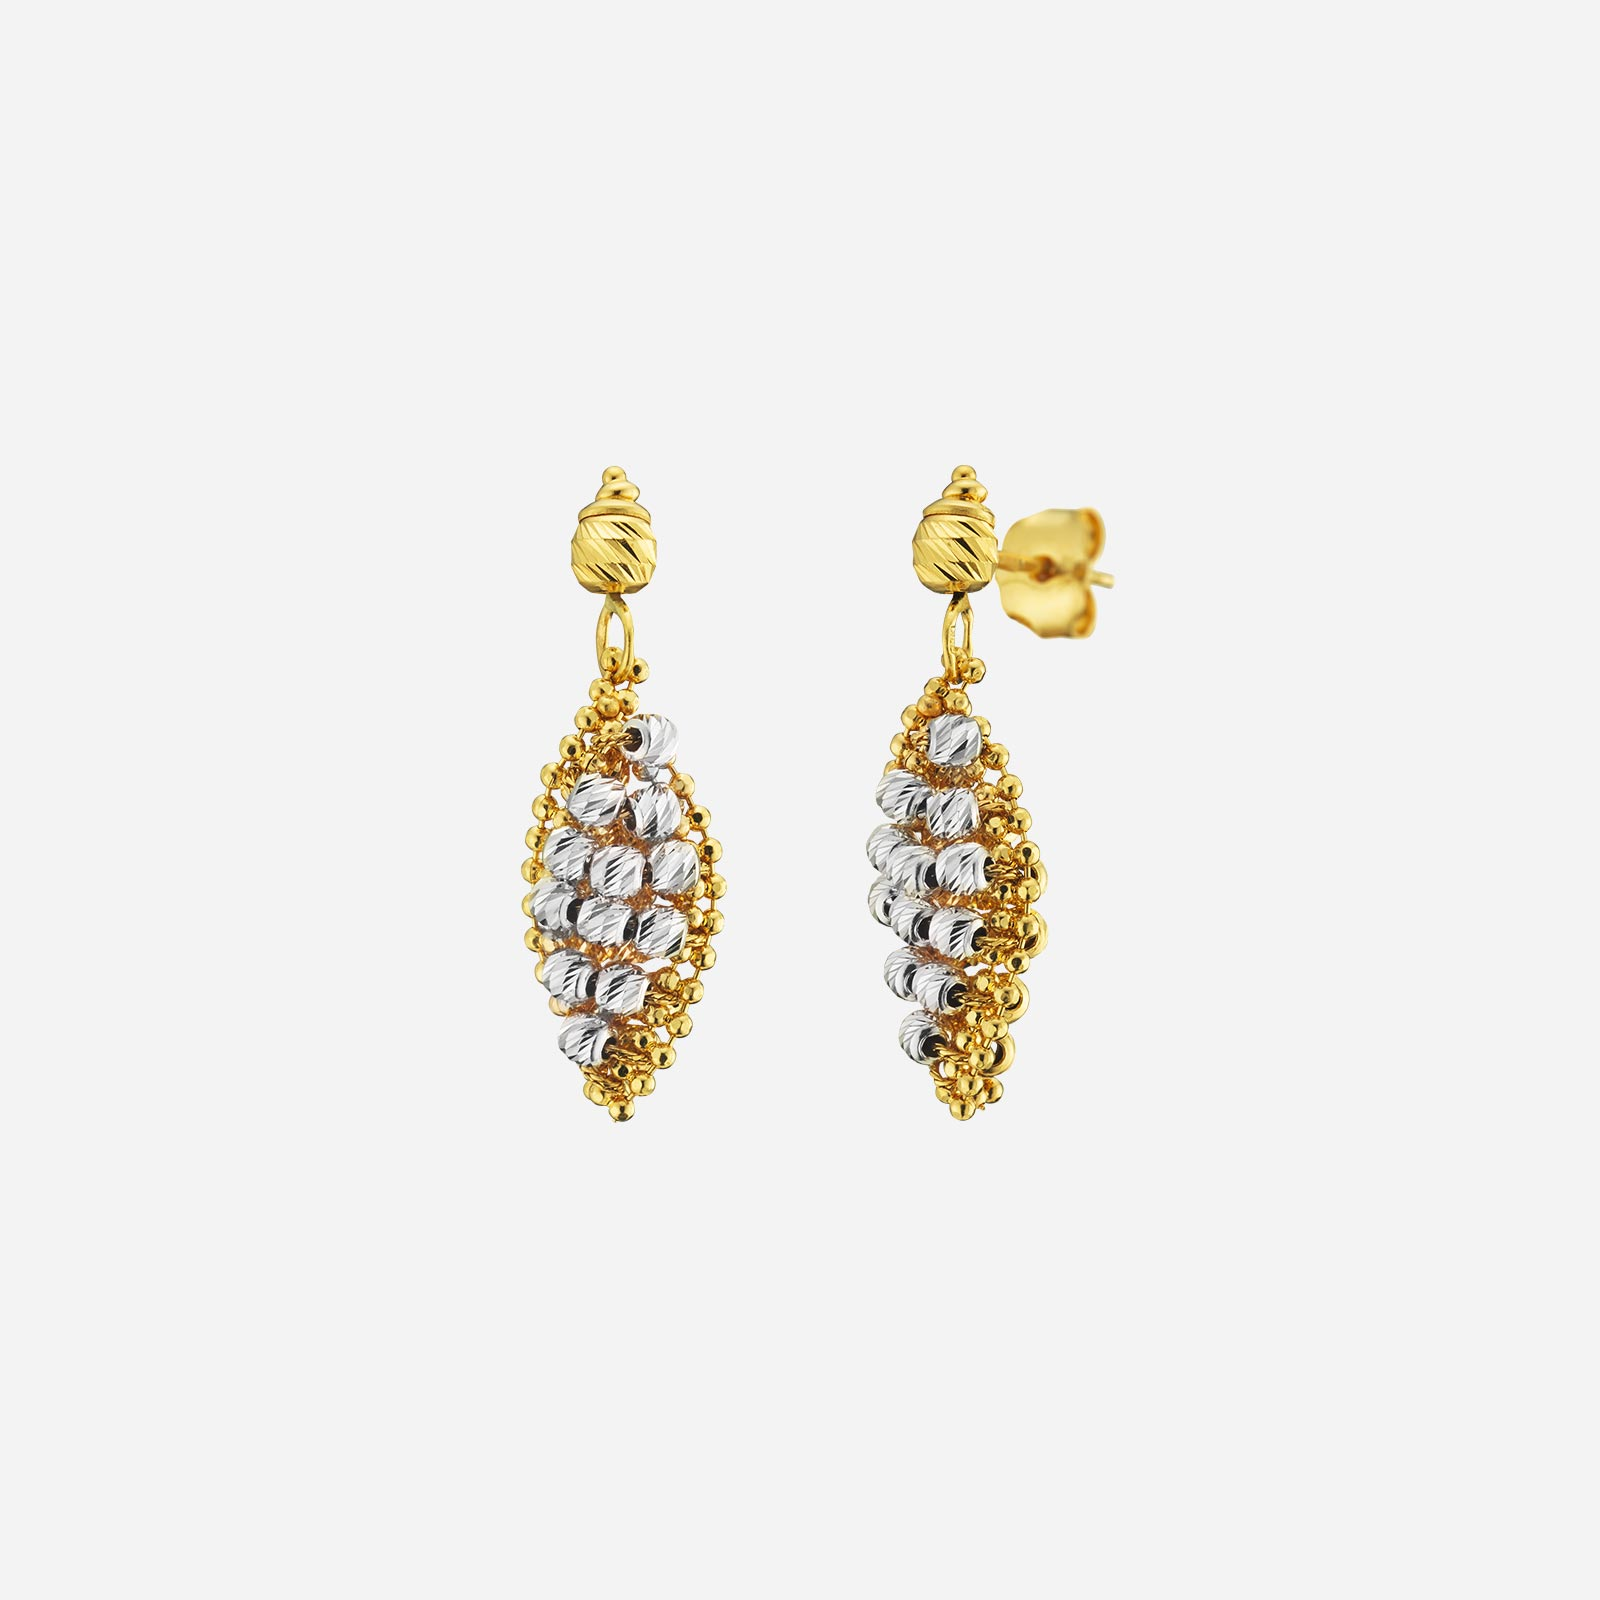 Duo Tone Beads Earrings